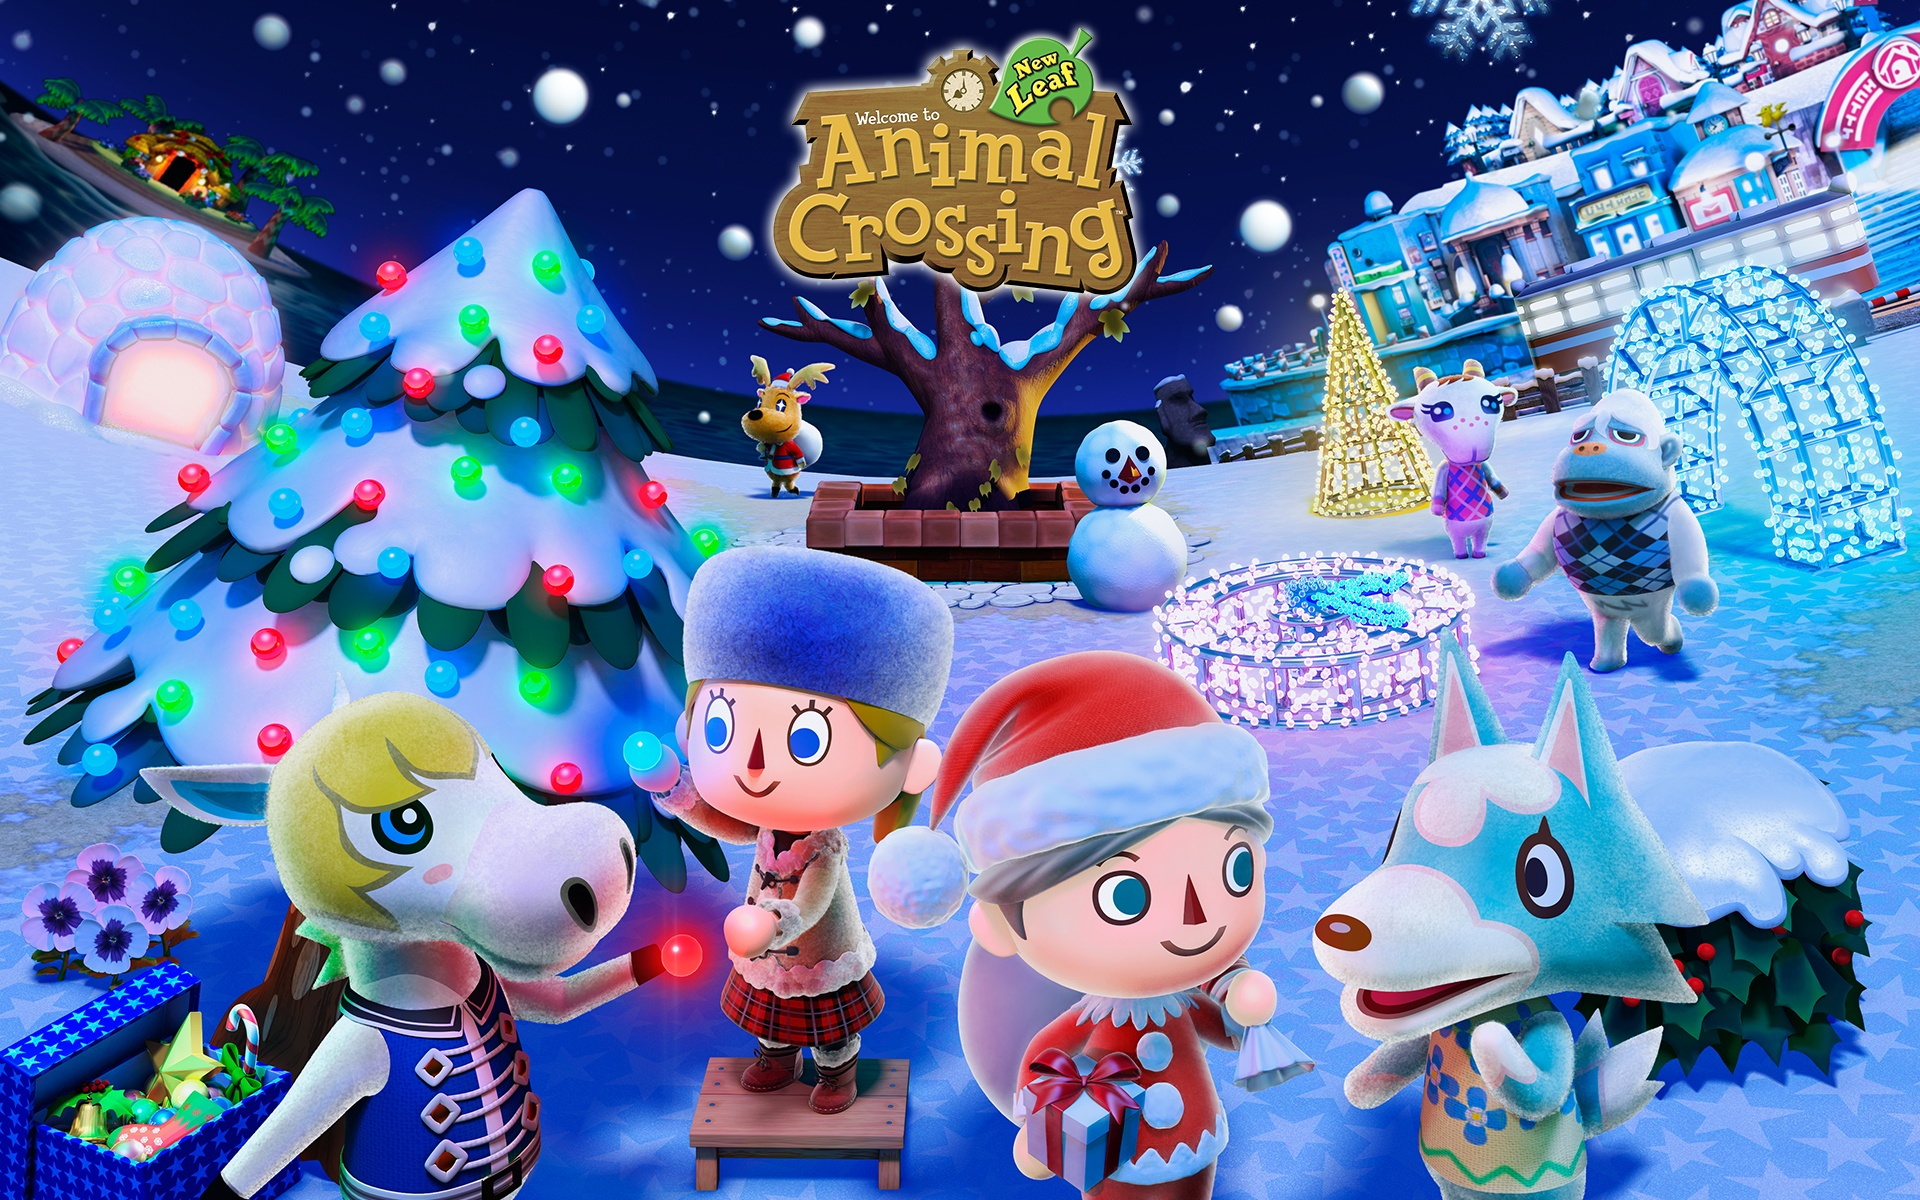 Videogame Wallpapers With Quotes Animal Crossing Wallpapers Hd Pixelstalk Net